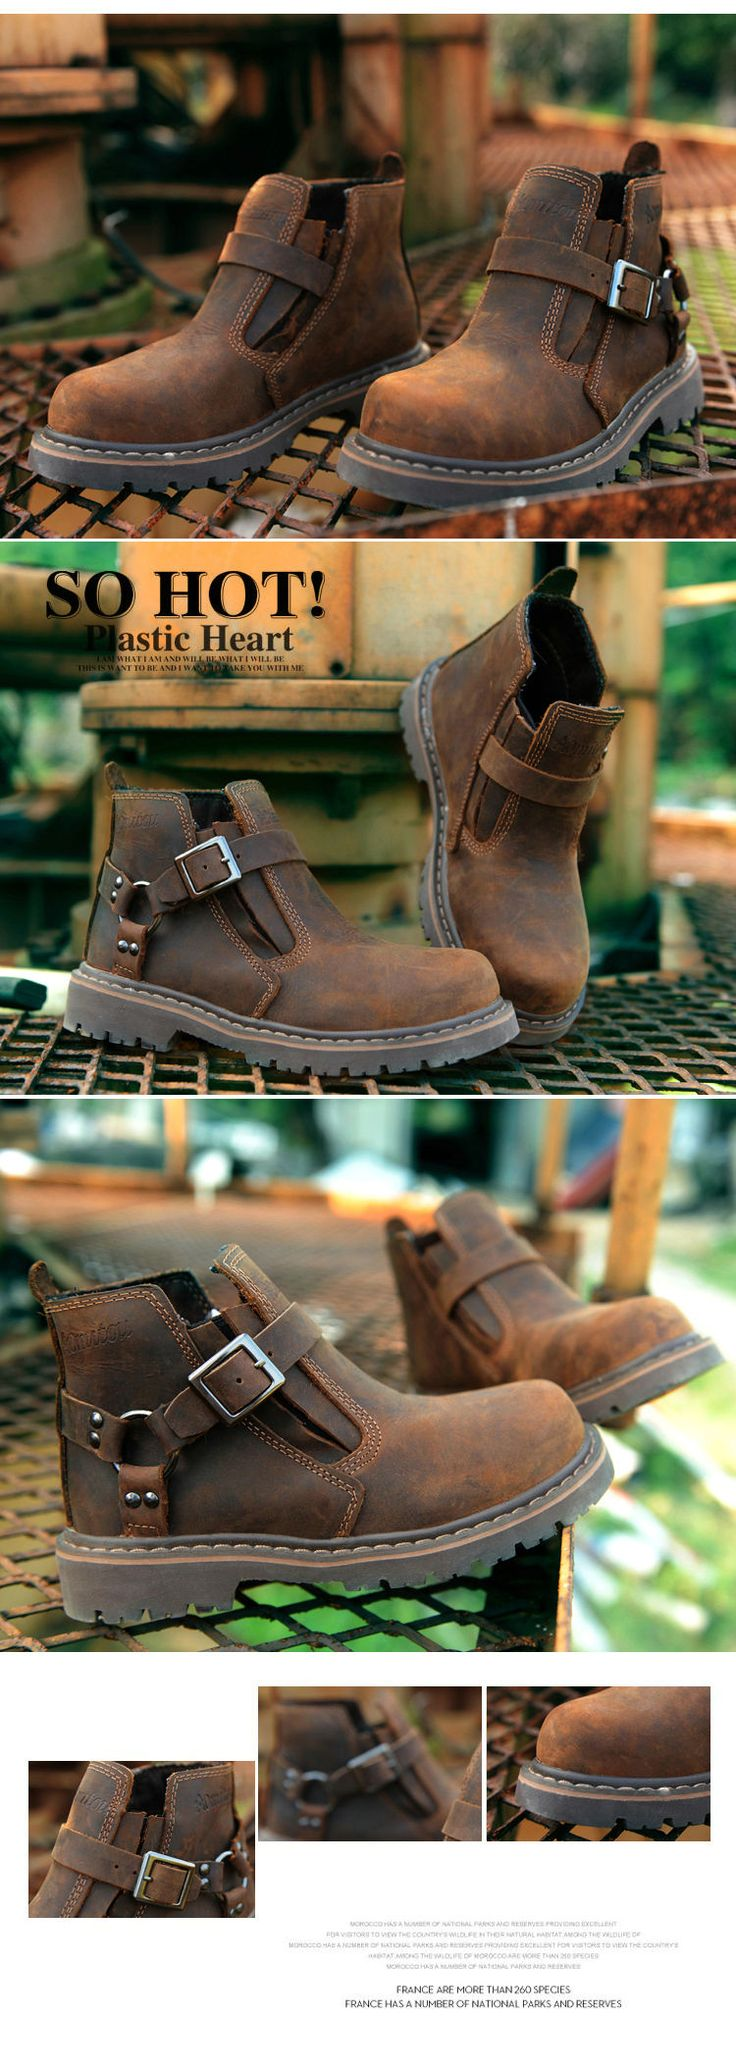 Fall New England Lun Mading soled boots lesbian boots tooling leather hiking boots fashion high shoes shoes - Taobao